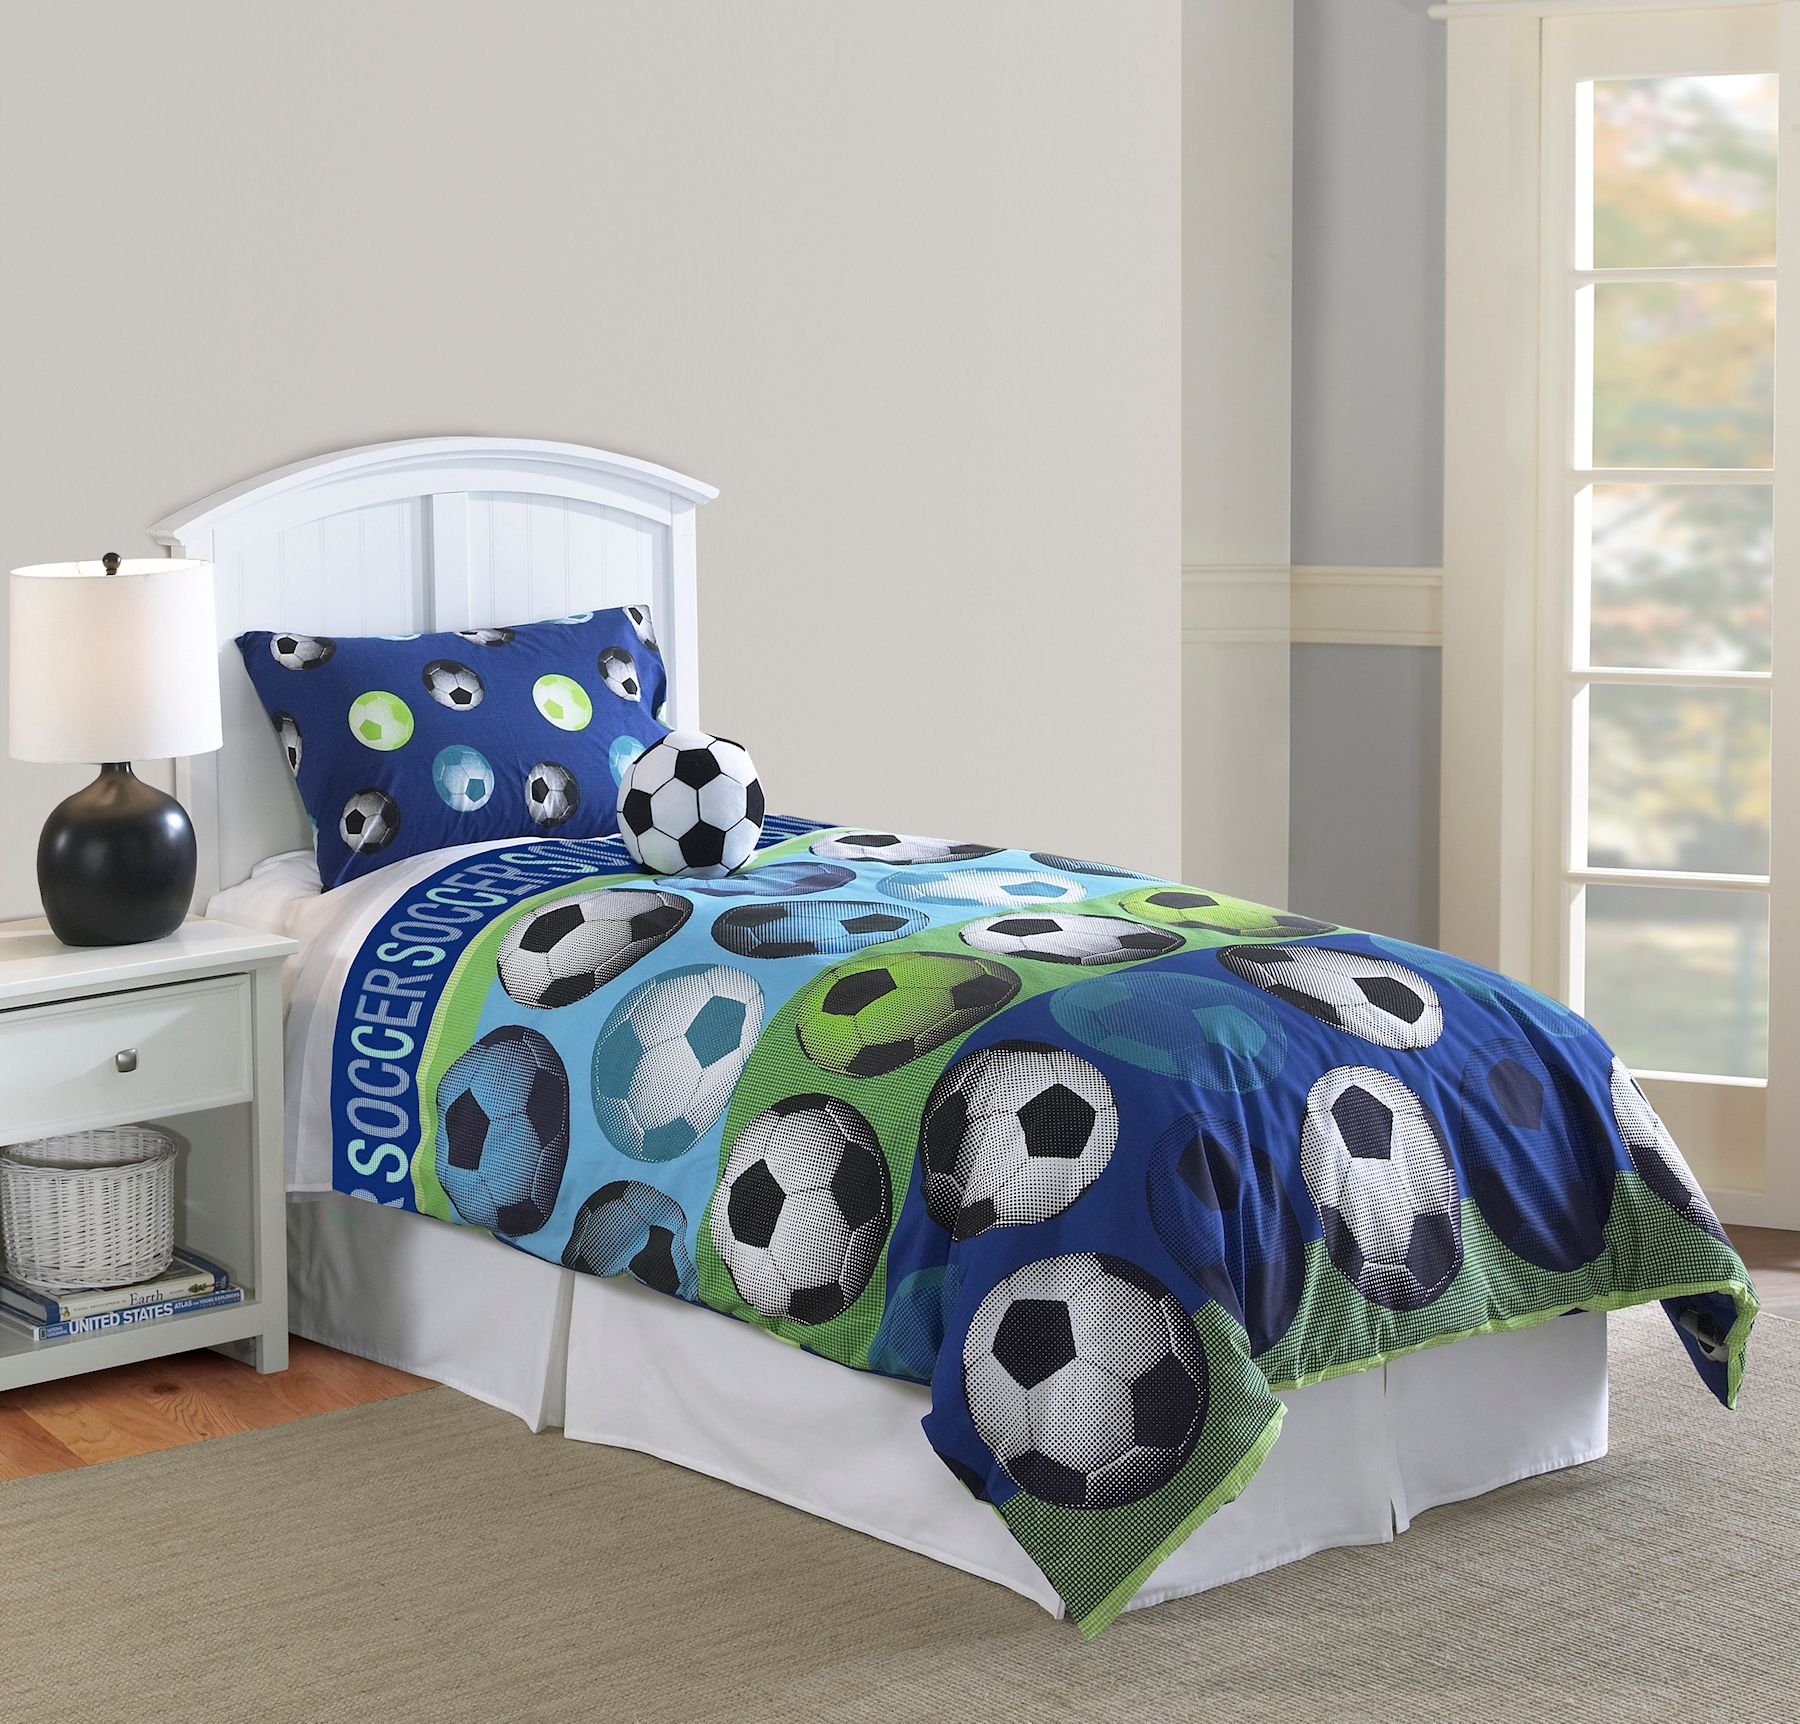 Blue Green Soccer Ball Bedding Twin Full Queen forter Set with